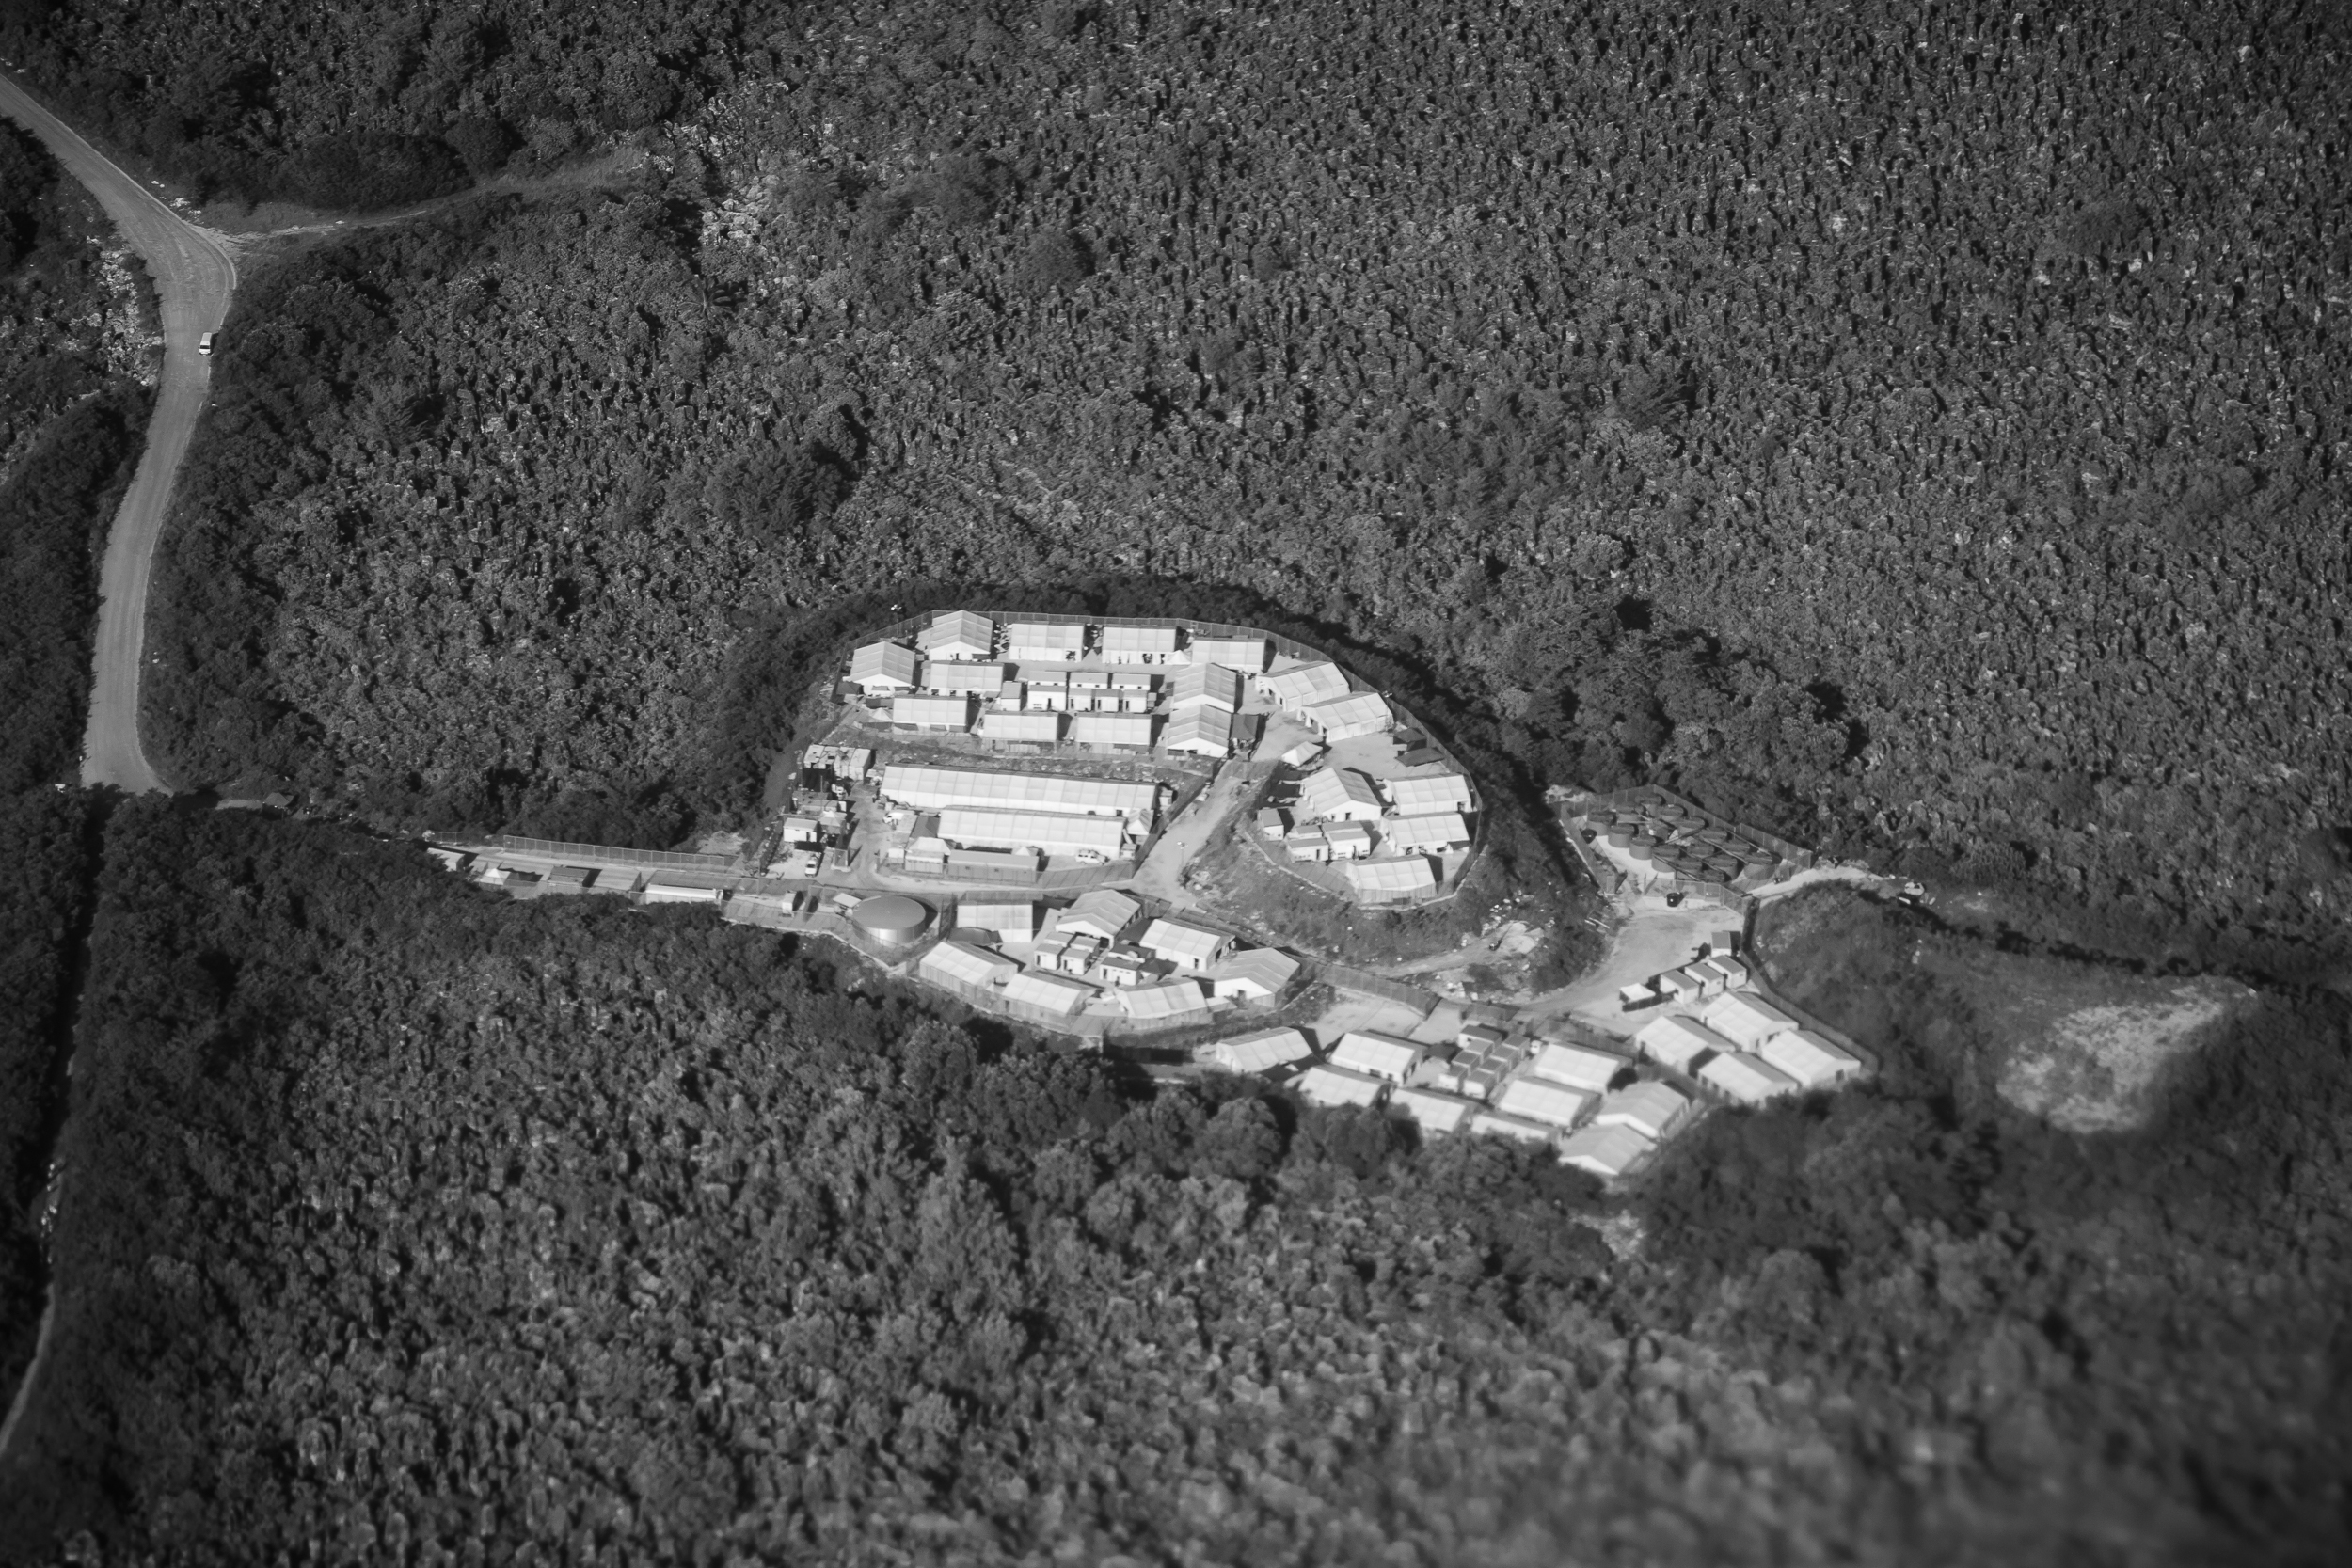 The detention centres are located in the middle of the island known to locals as 'Topside'. Topside is home to three Australian detention centres and the desolate remains of Nauru's once prosperous mining industry.